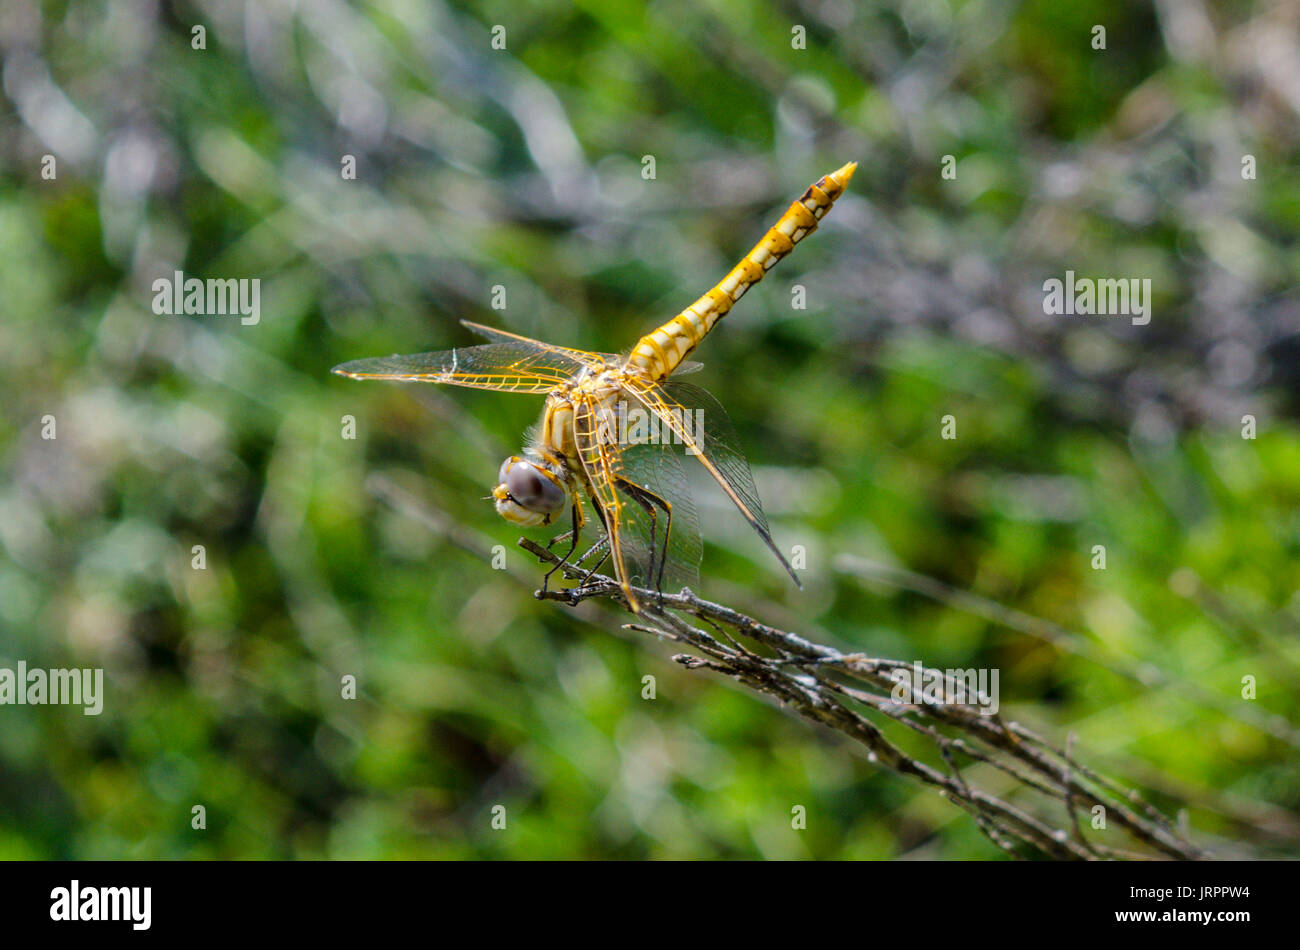 A Variegated Meadowhawk near Mount Lassen California - Stock Image